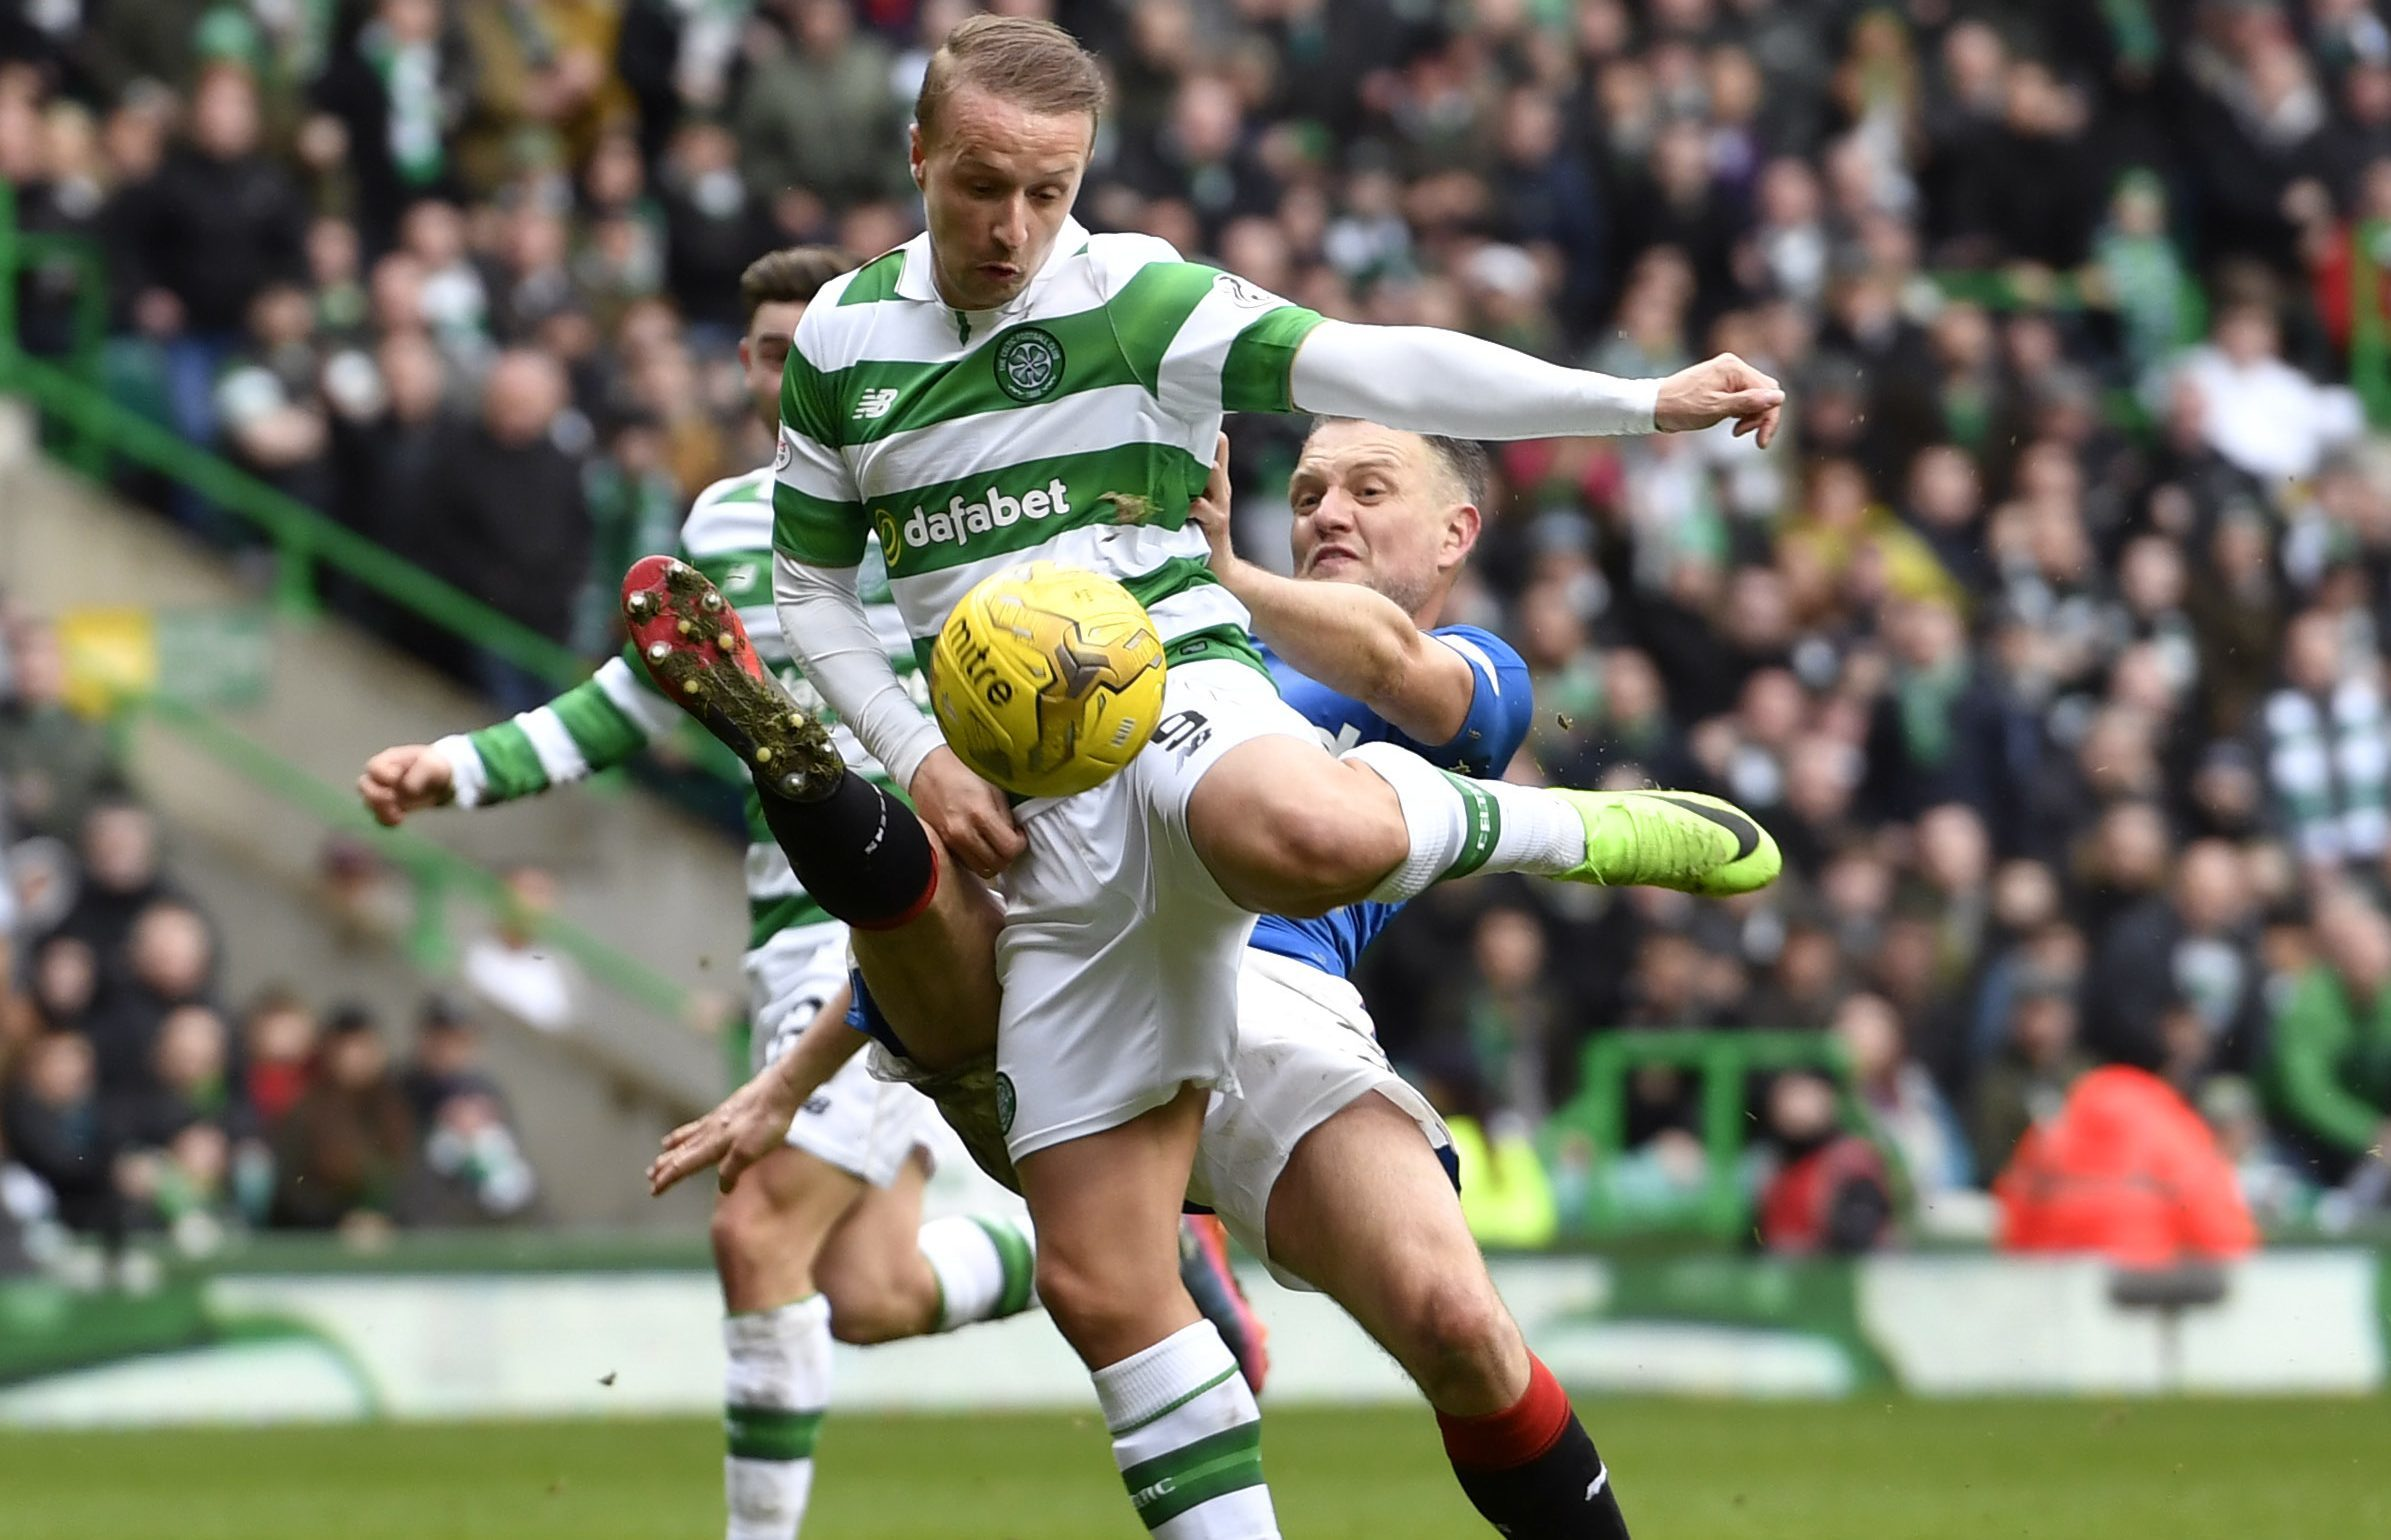 Celtic's players appeal for a penalty as Leigh Griffiths (left) is tackled by Rangers' Clint Hill in the last minute (SNS)